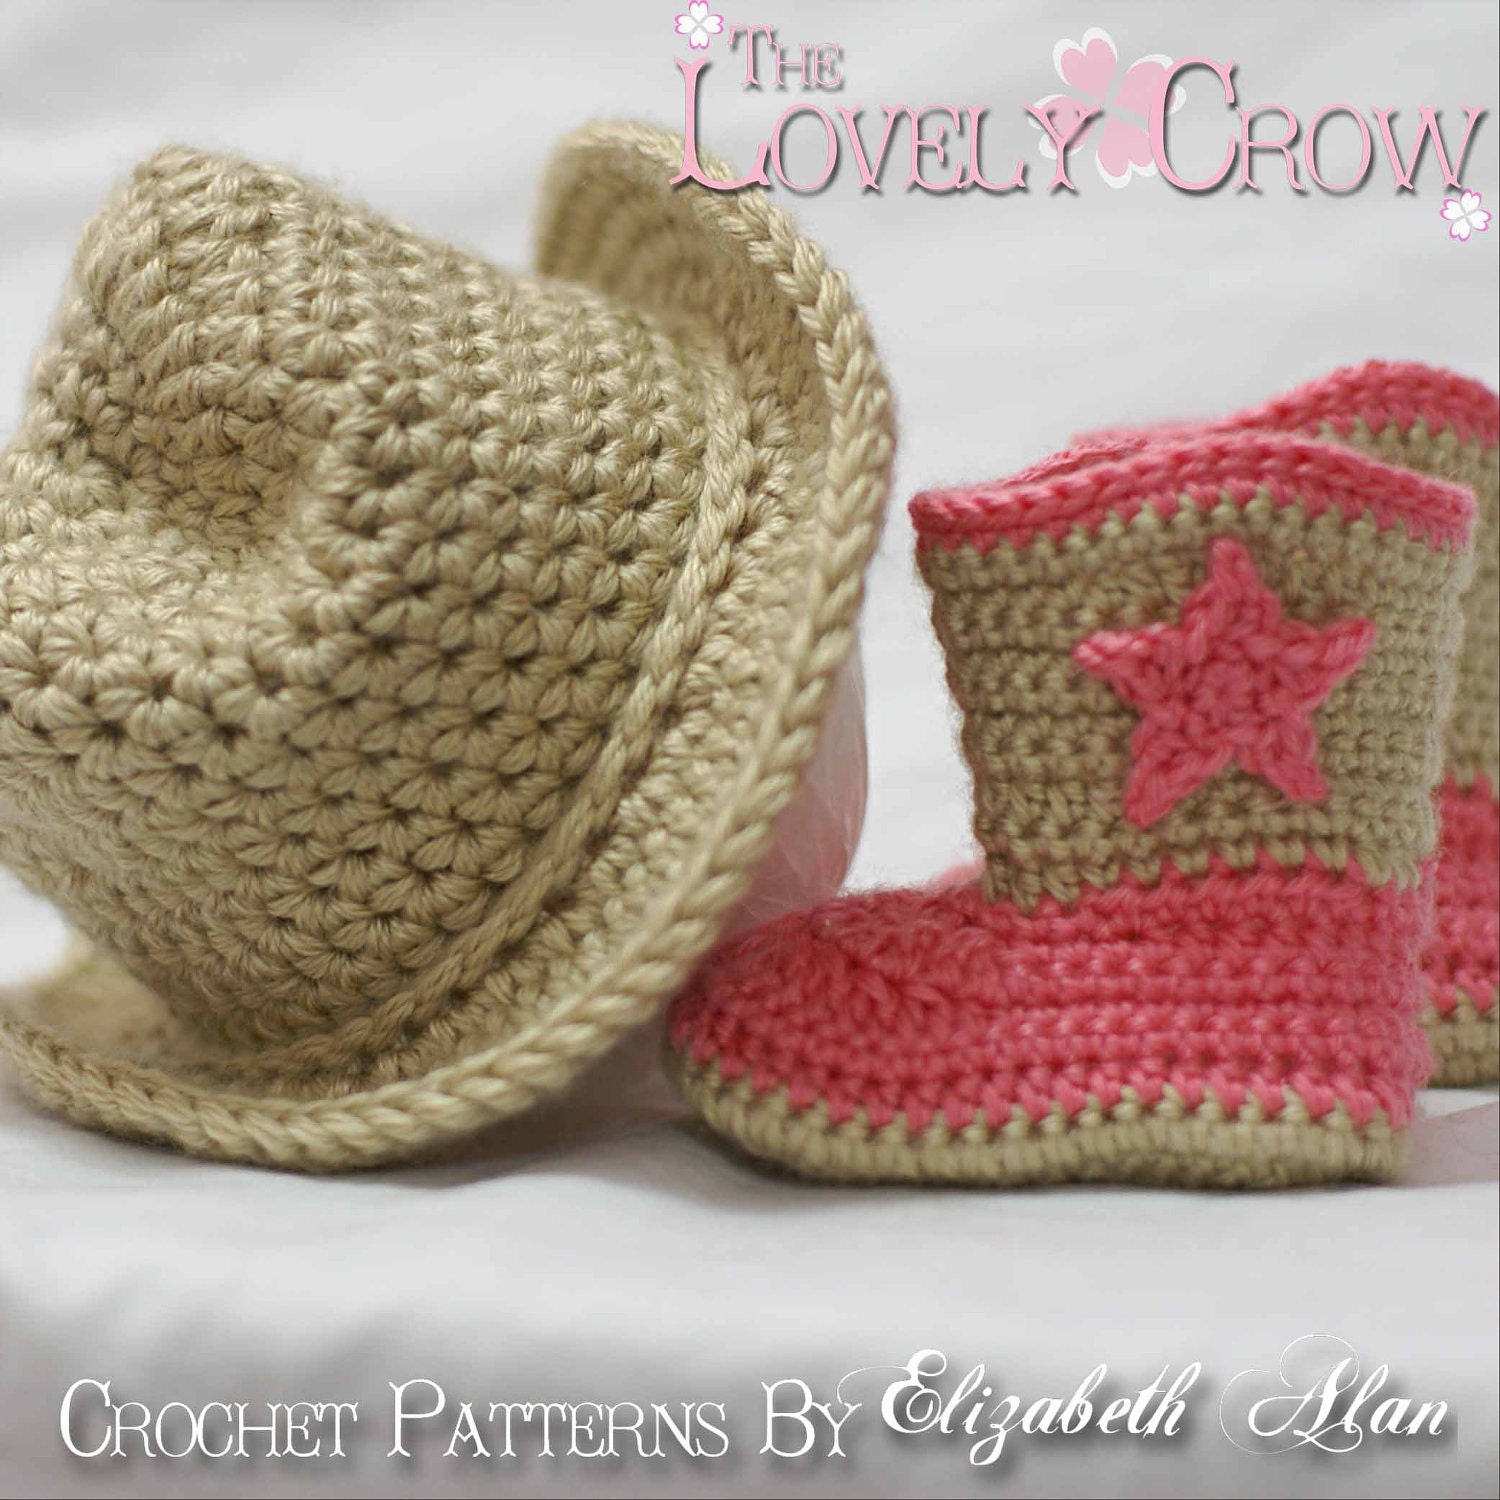 Elizabeth Crochet Hat Pattern For Child : Cowboy Crochet Patterns. Includes patterns for Boot